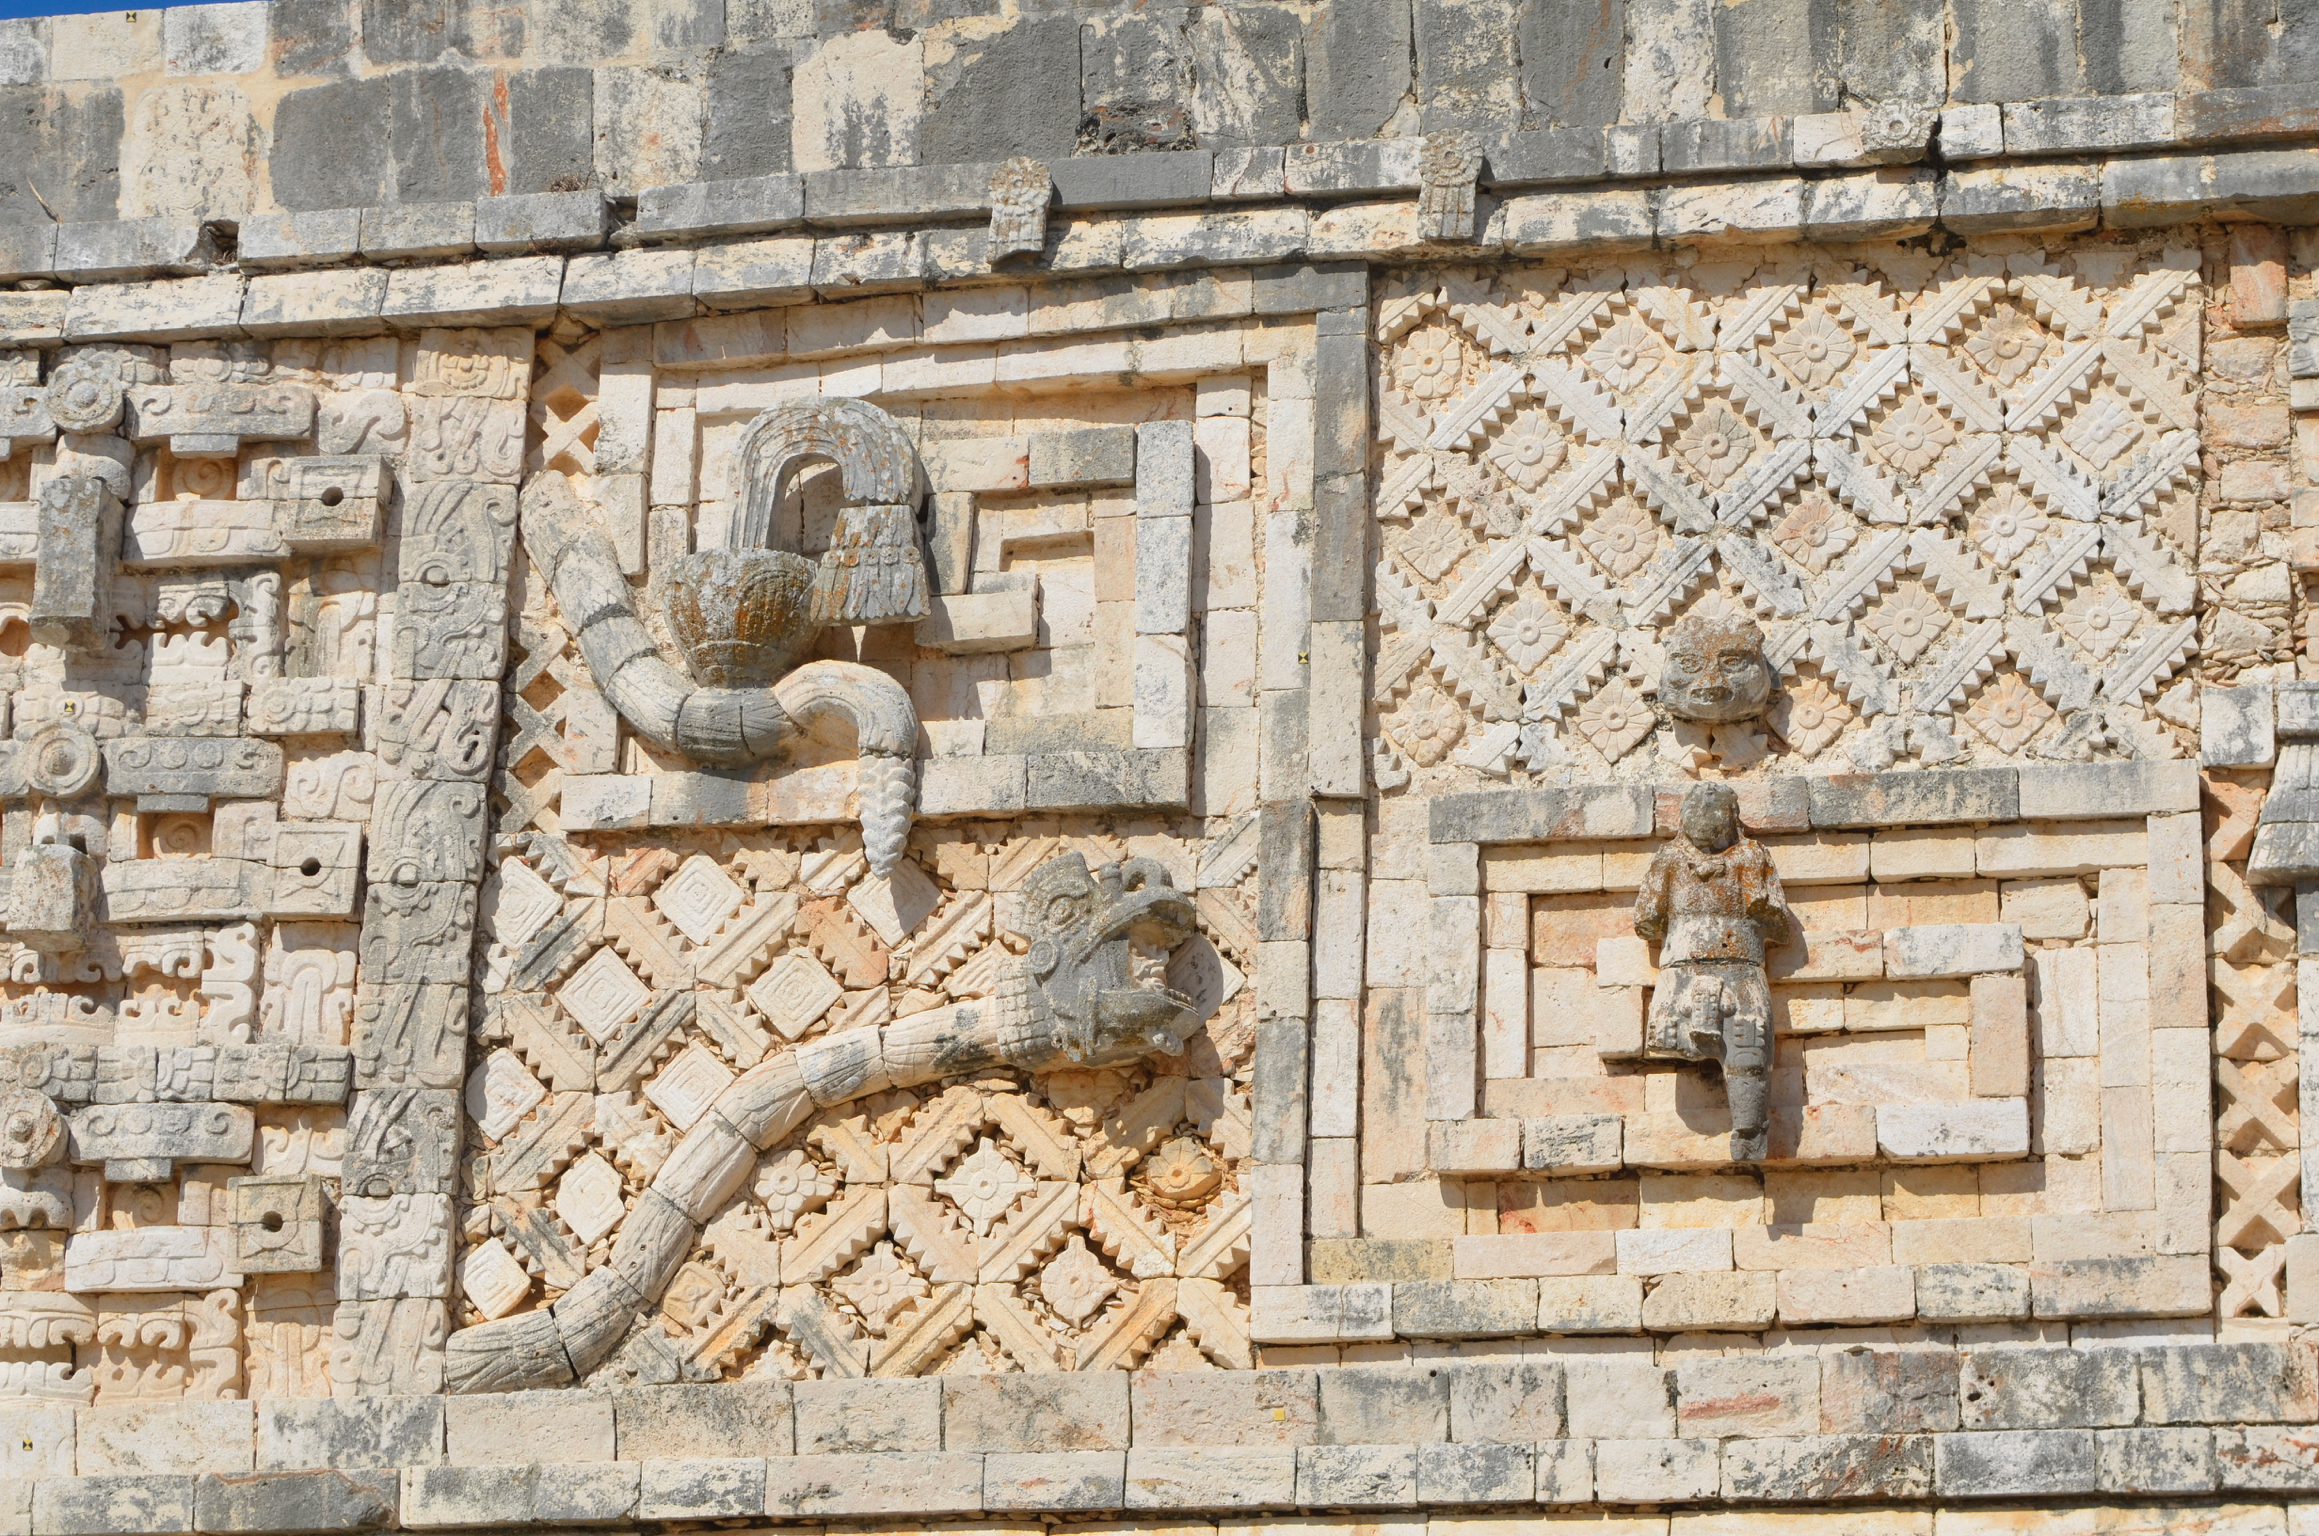 """The buildings at Uxmal are decorated with gorgeous bas-relief sculptures. You can see a plumed snake here, with a head emerging from its open mouth. This is the """"spirit snake"""" incarnation of Kulkulcan, enabling the spirit of an ancestor to communicate with the living."""